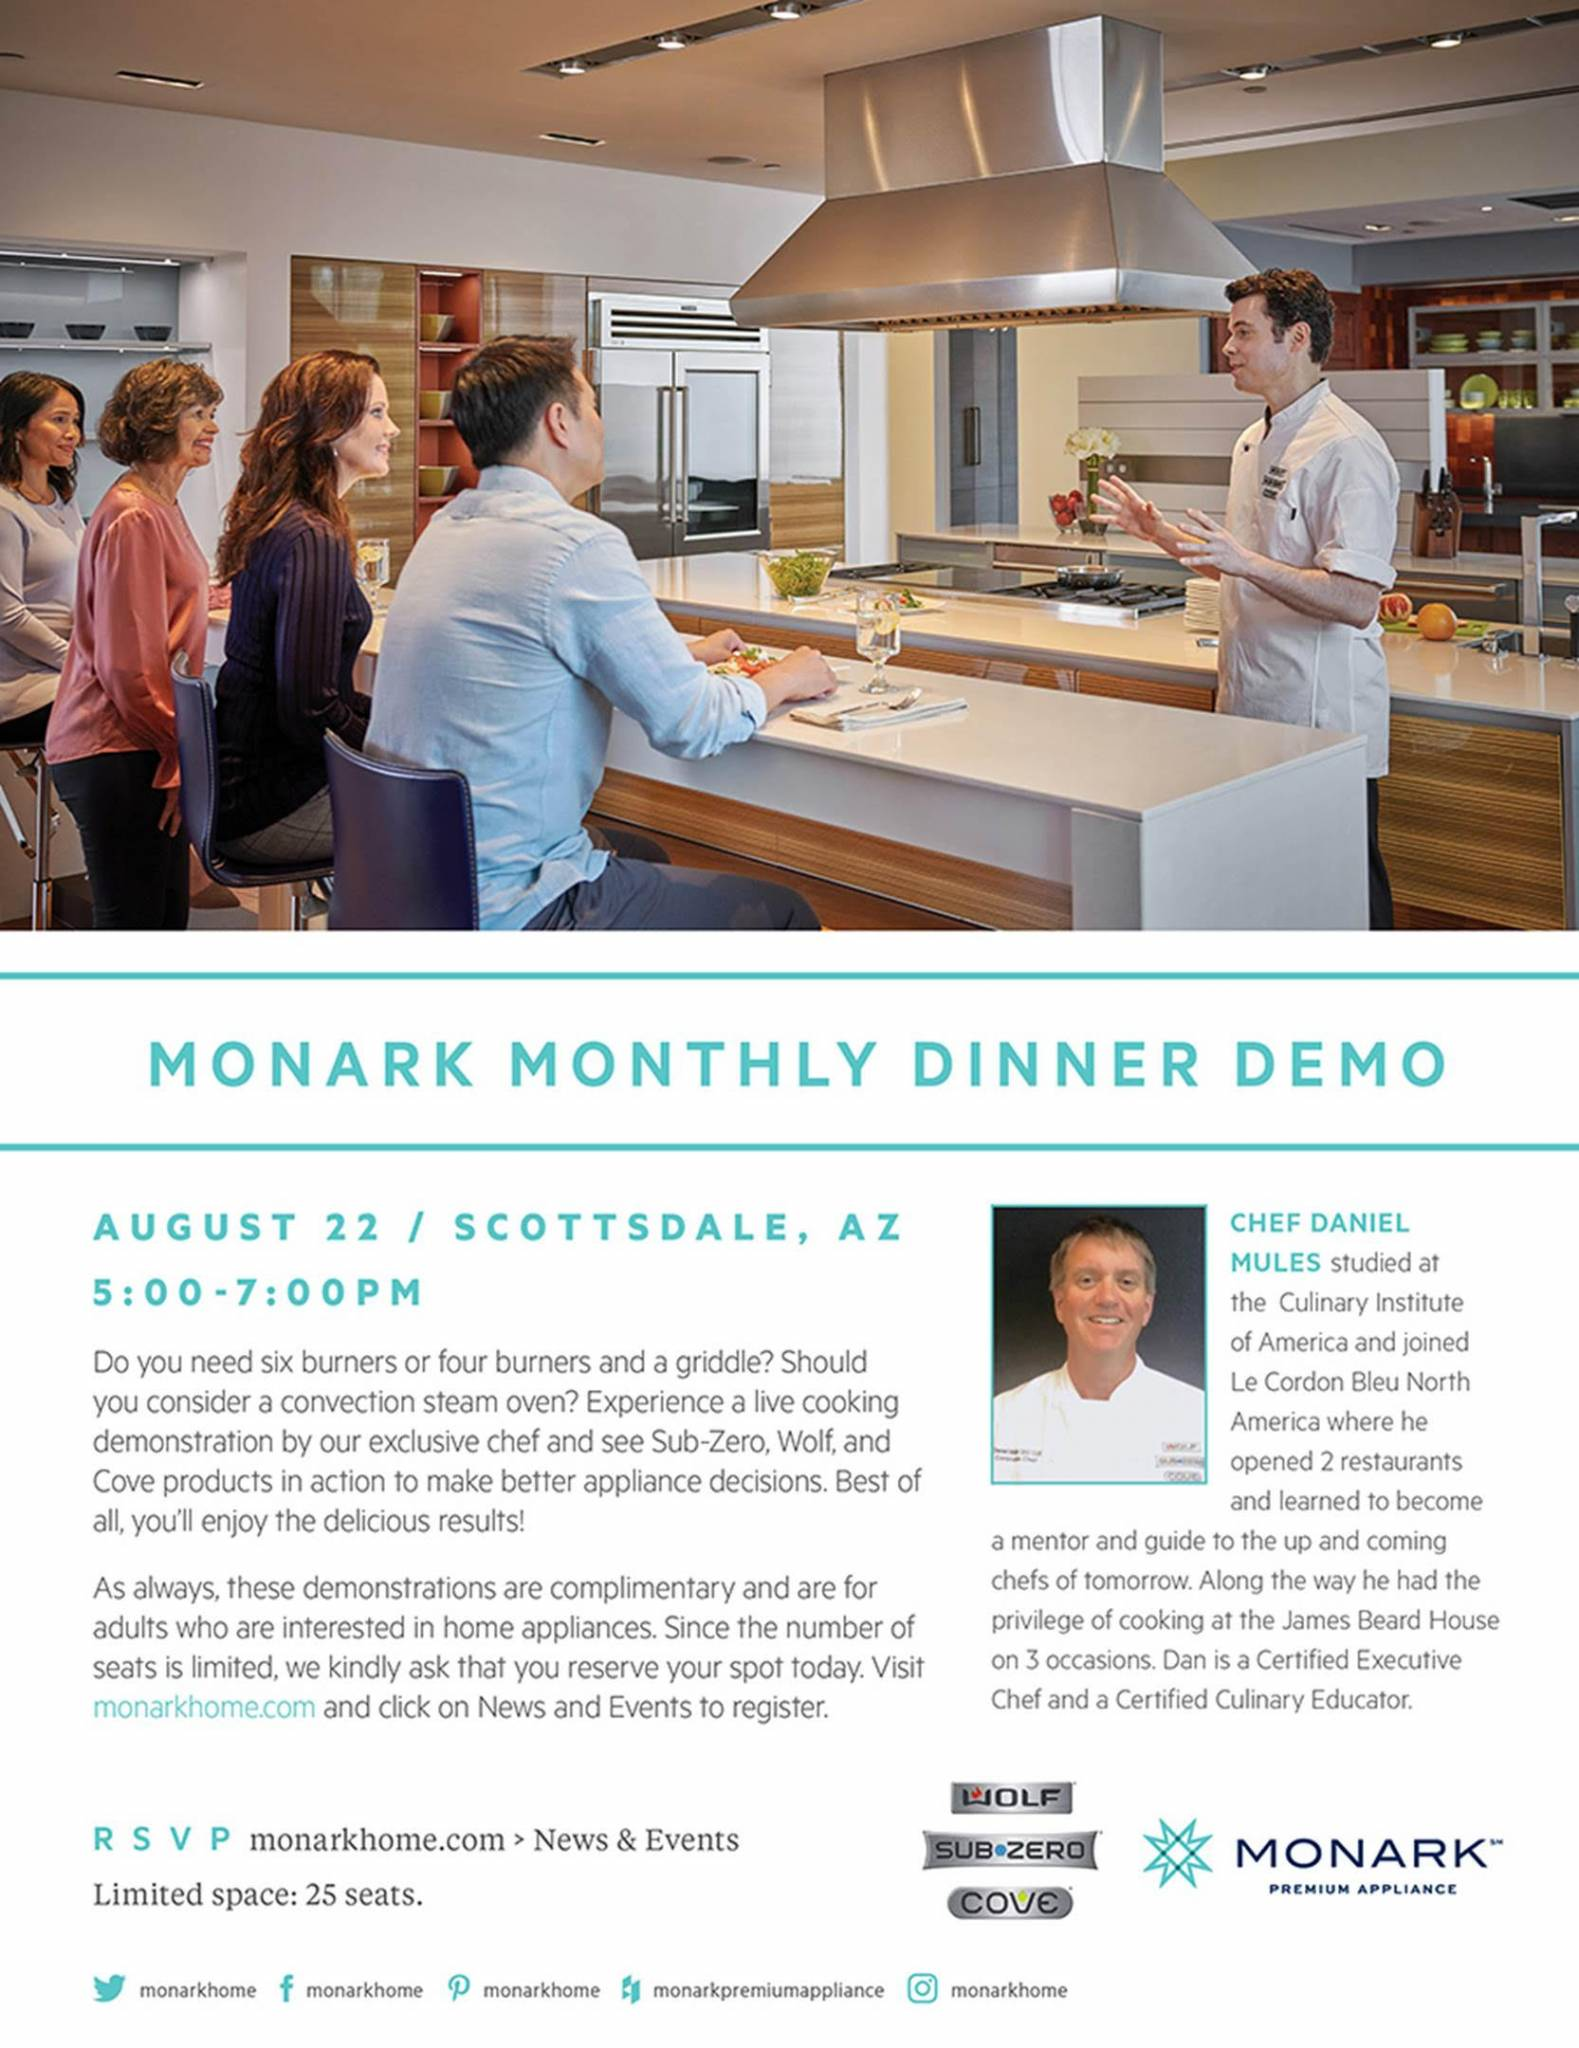 Monark Dinner Demo – Scottsdale, August 22